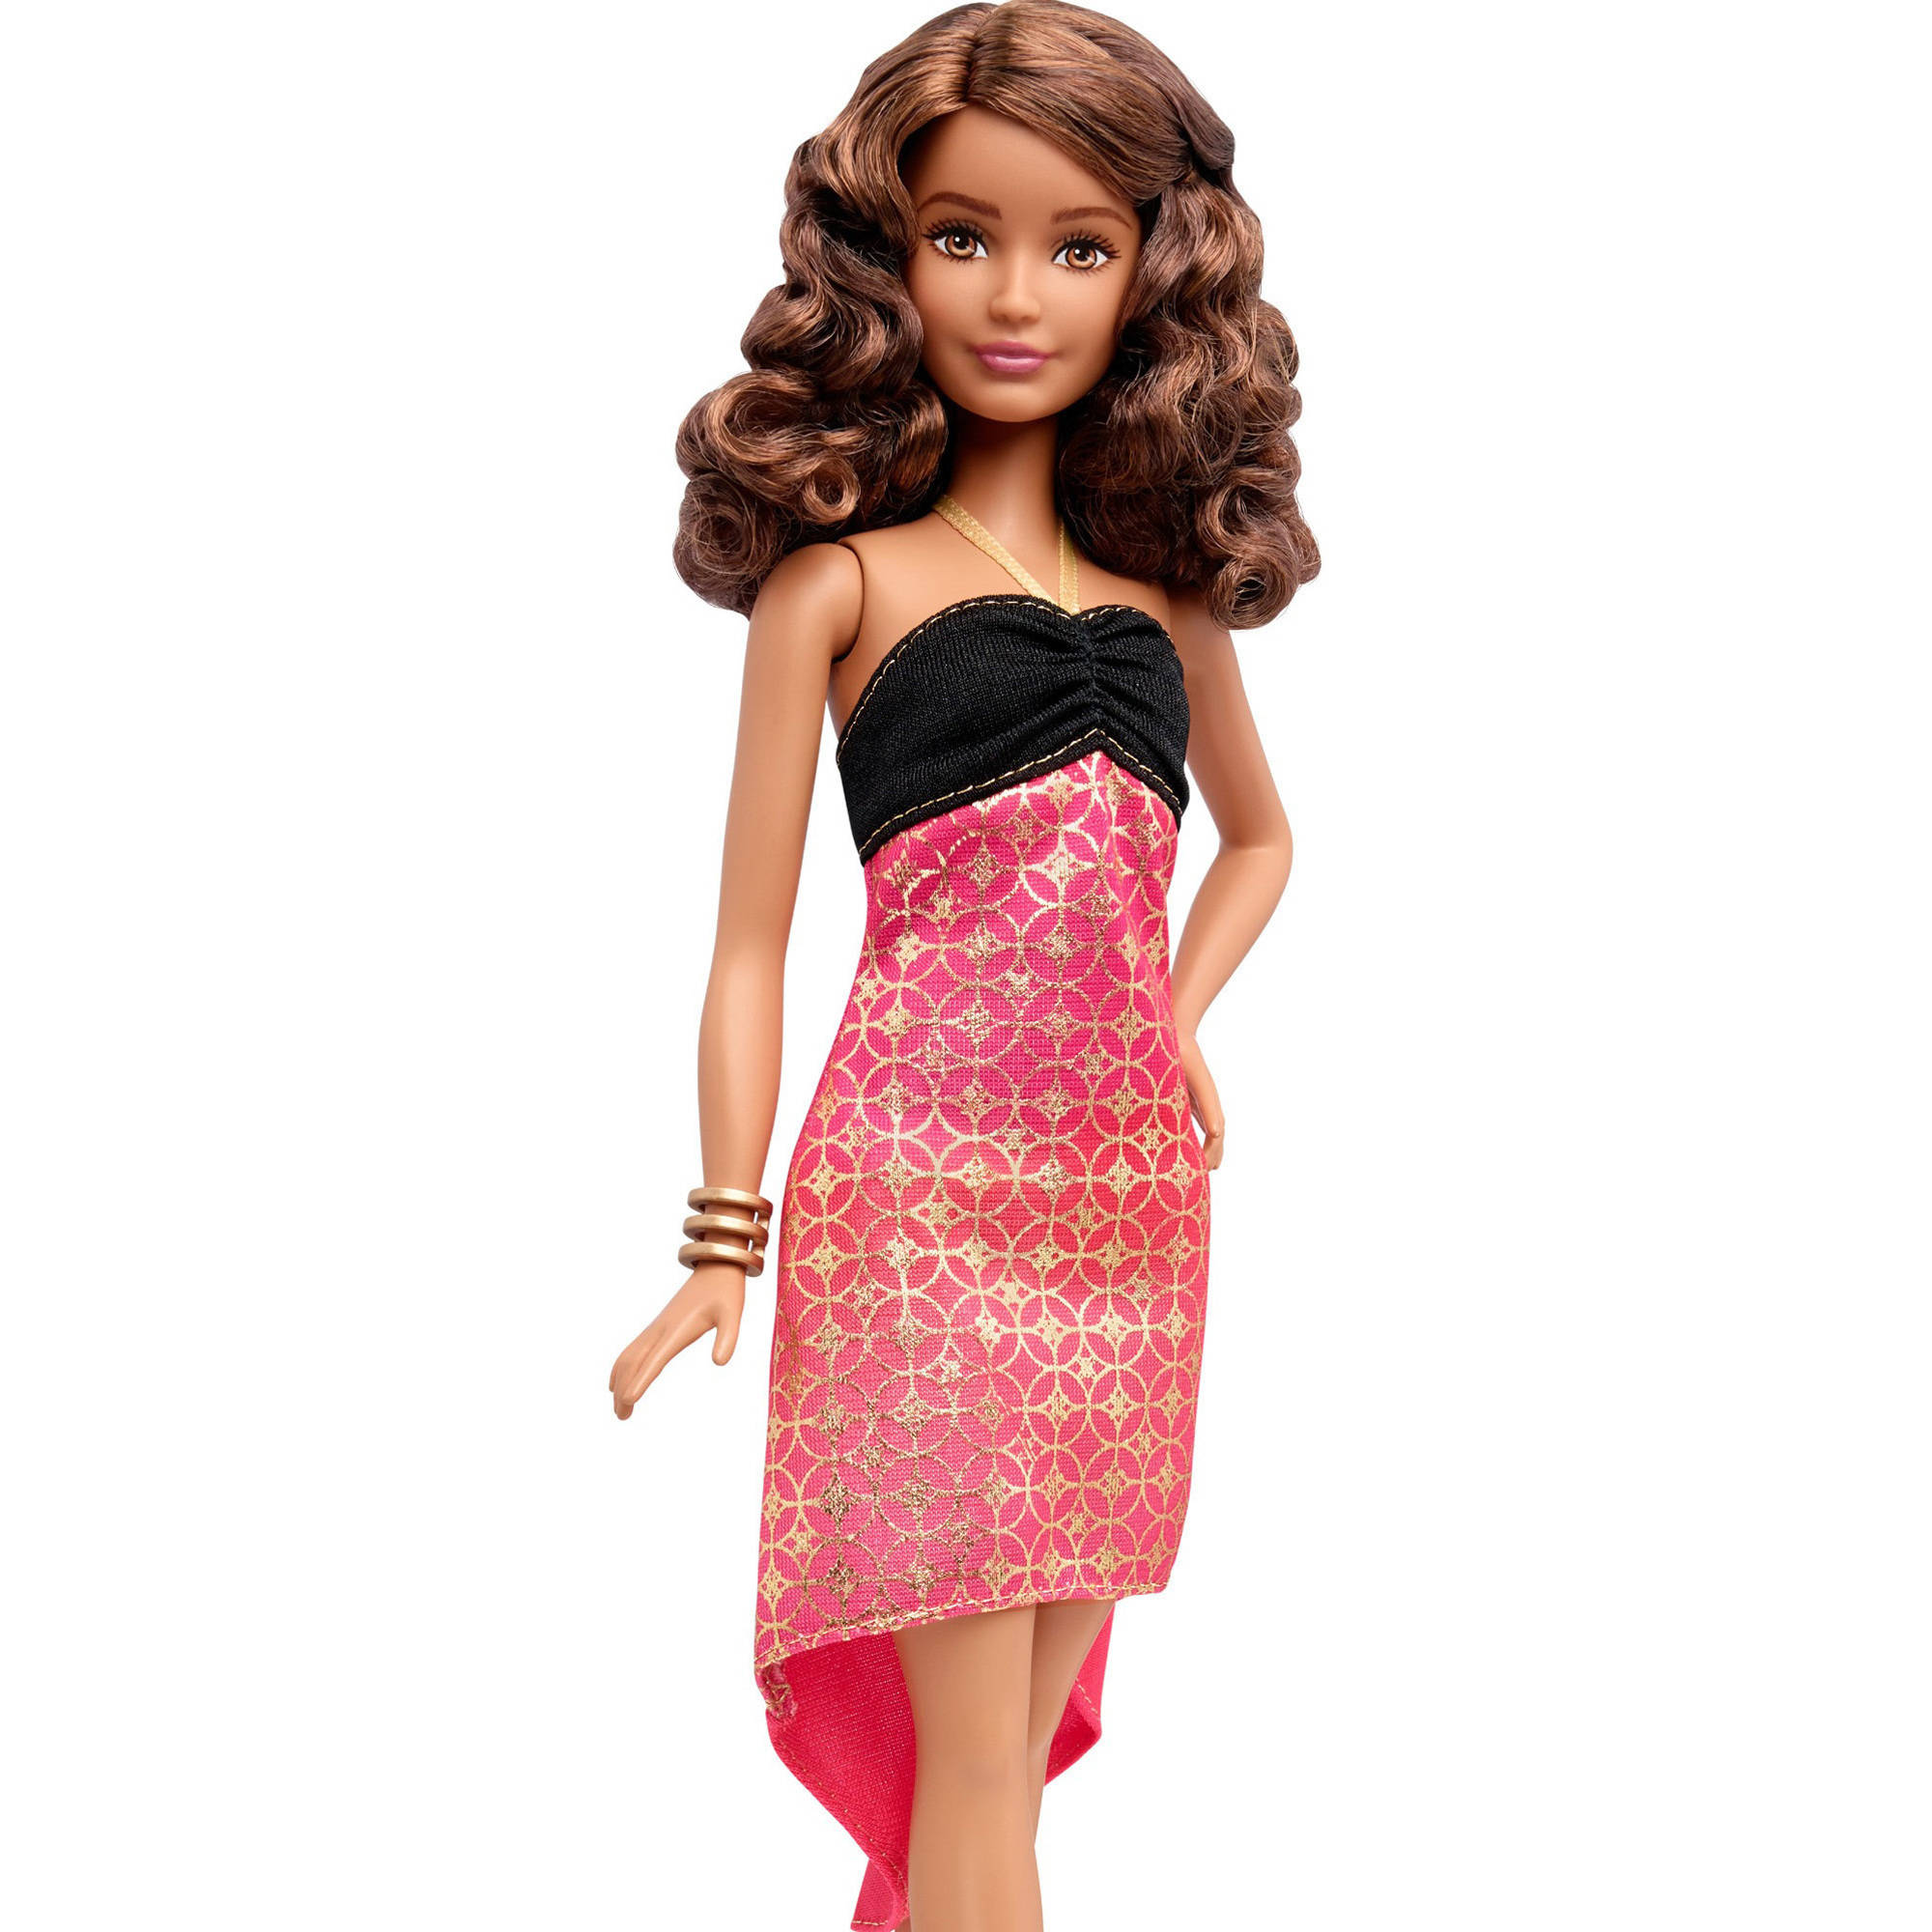 Barbie Fashionistas Doll, Crazy For Coral, Petite